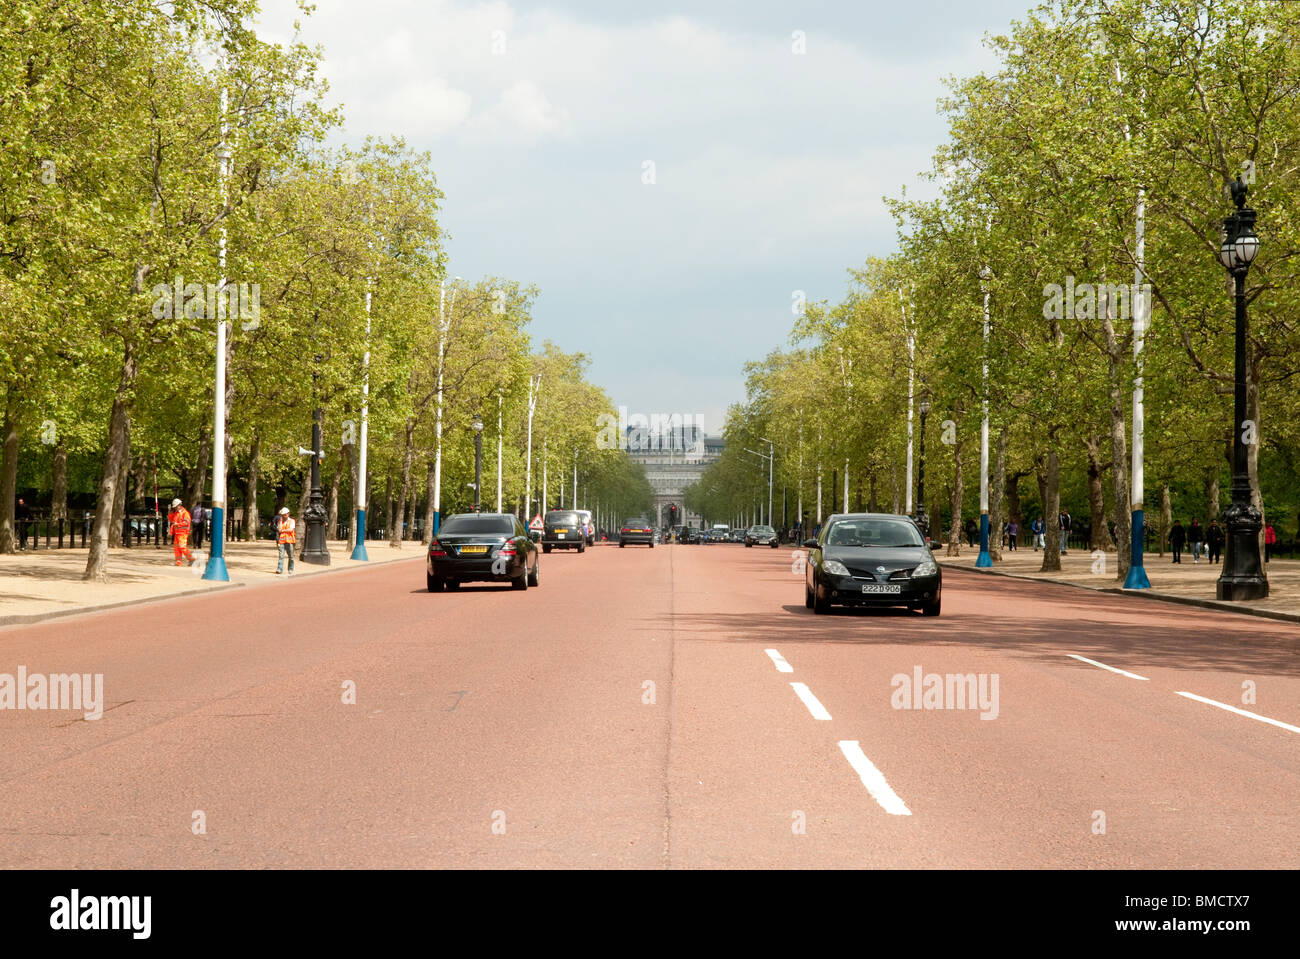 The Mall, London - Stock Image